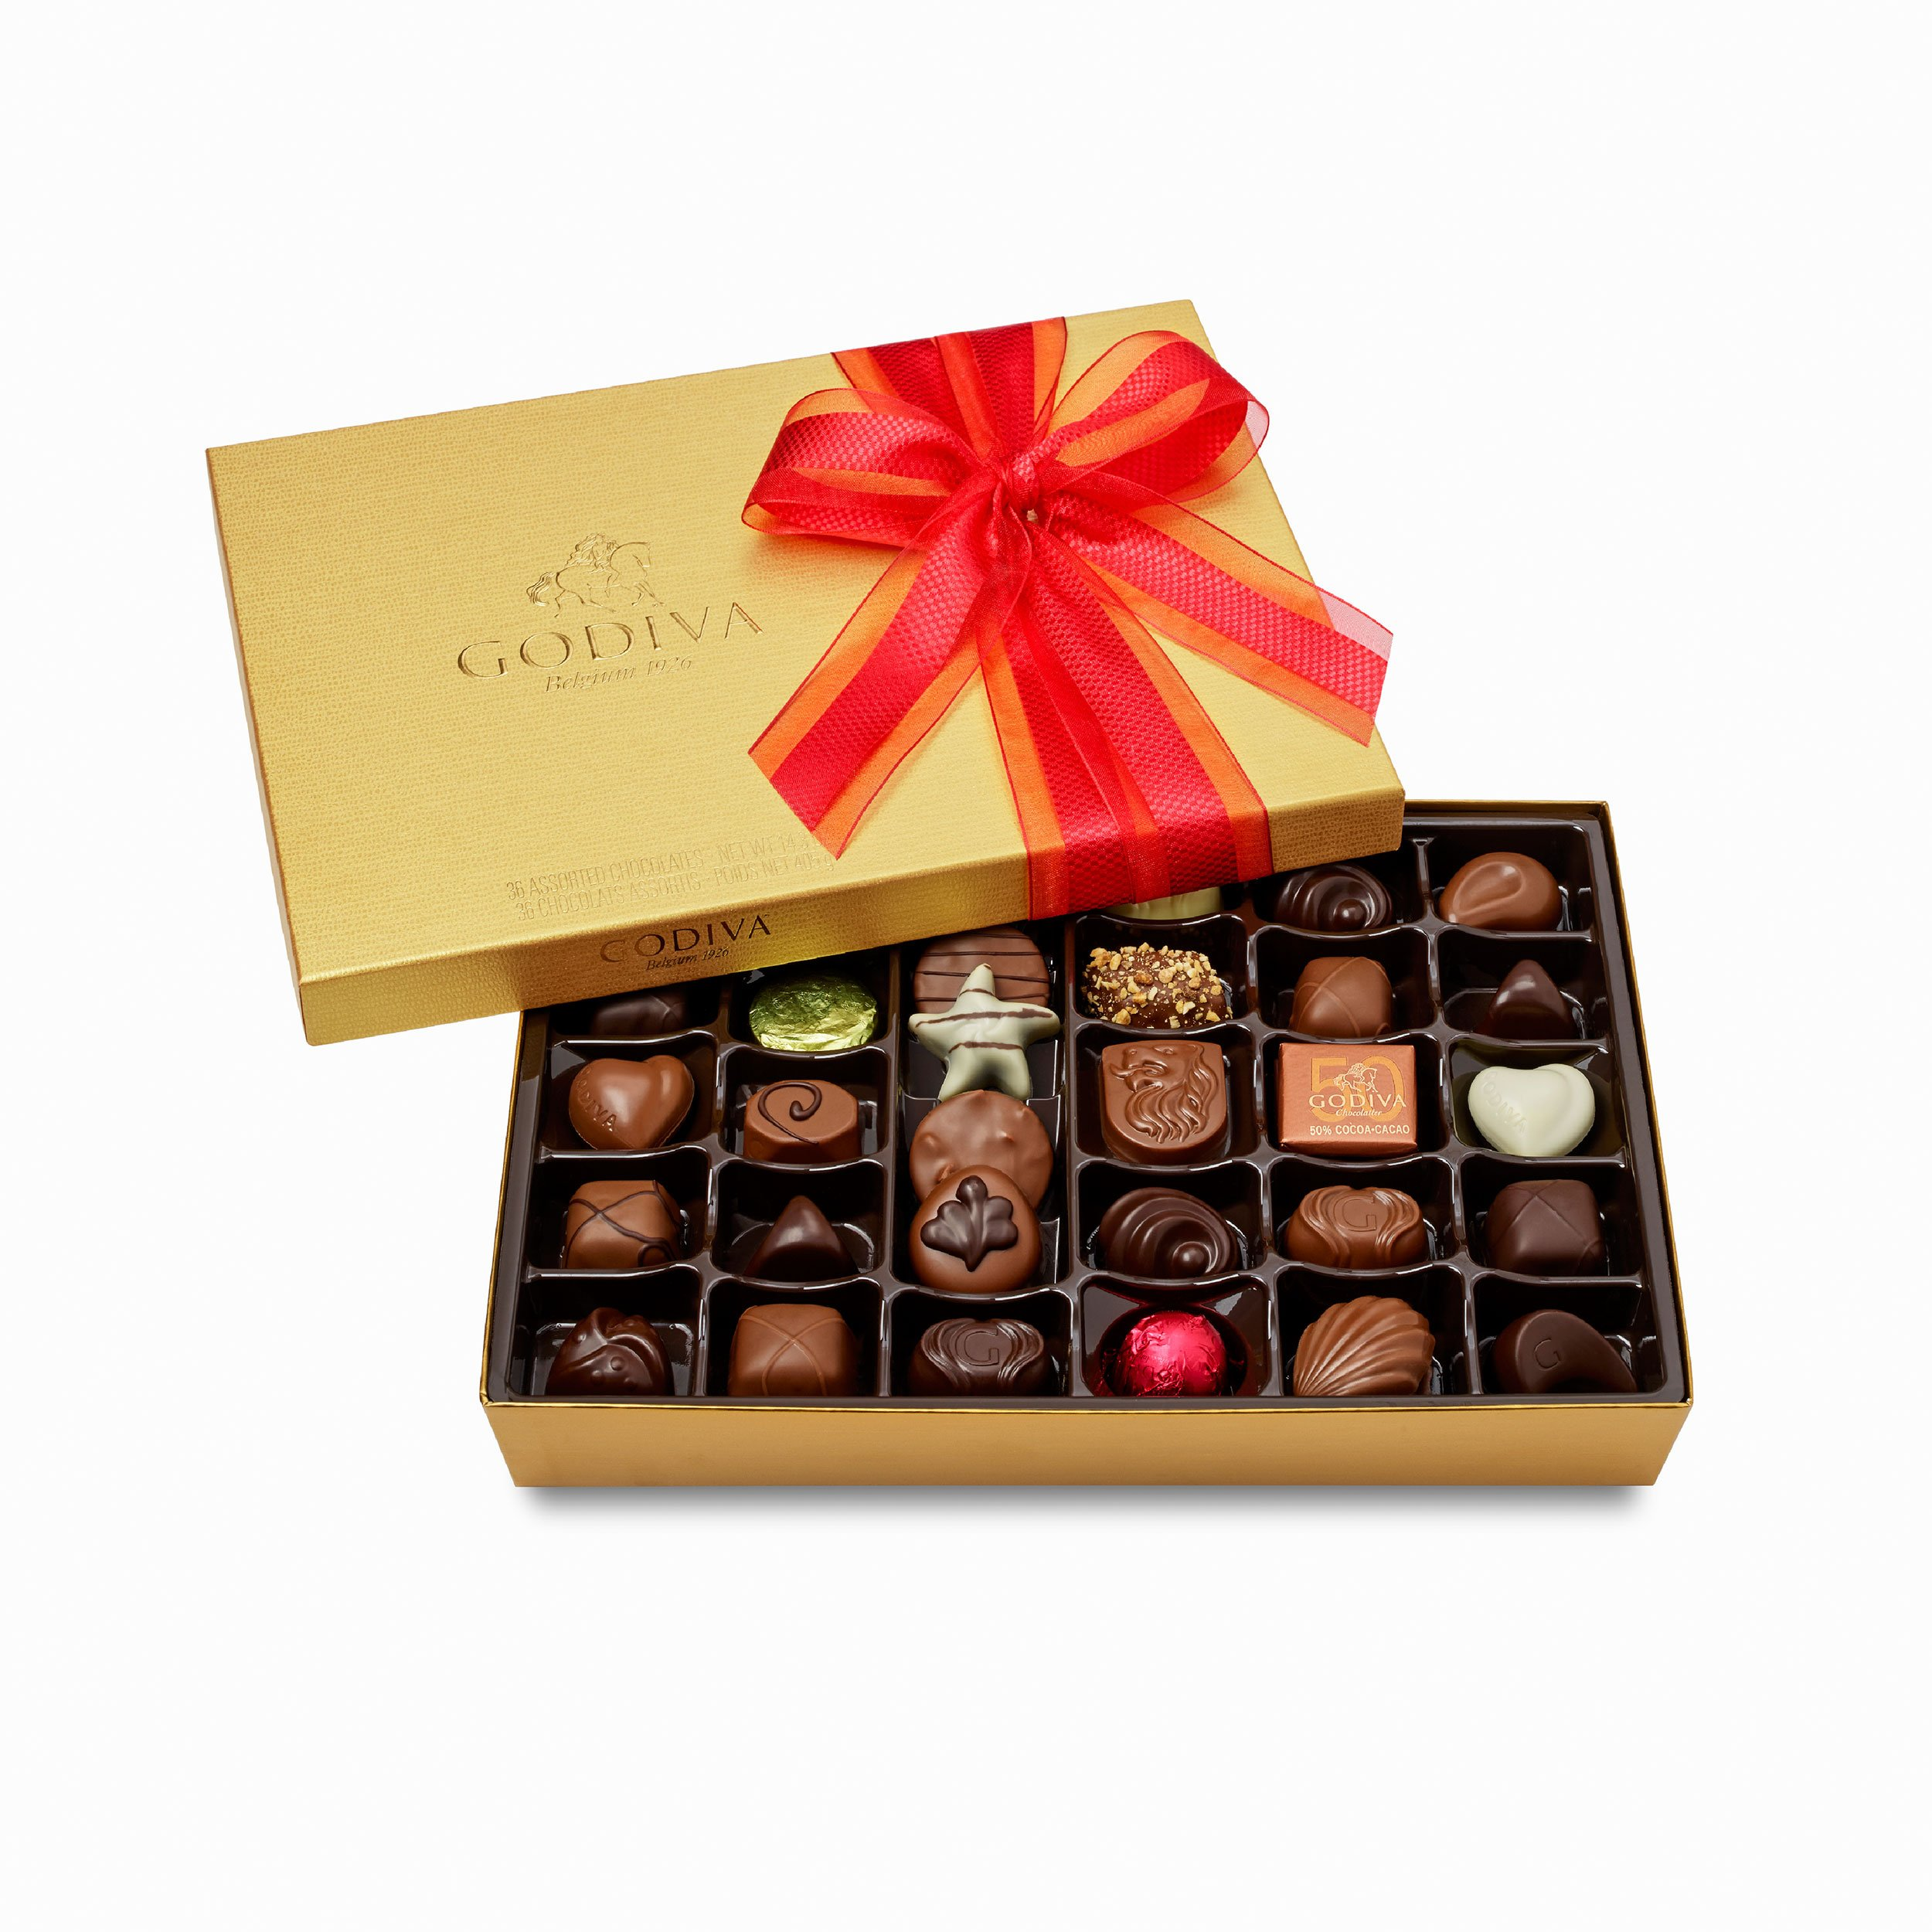 Godiva Chocolatier Gold Ballotin Assorted Gourmet Chocolates 36 Piece Gift Box, Great for Gifting by GODIVA Chocolatier